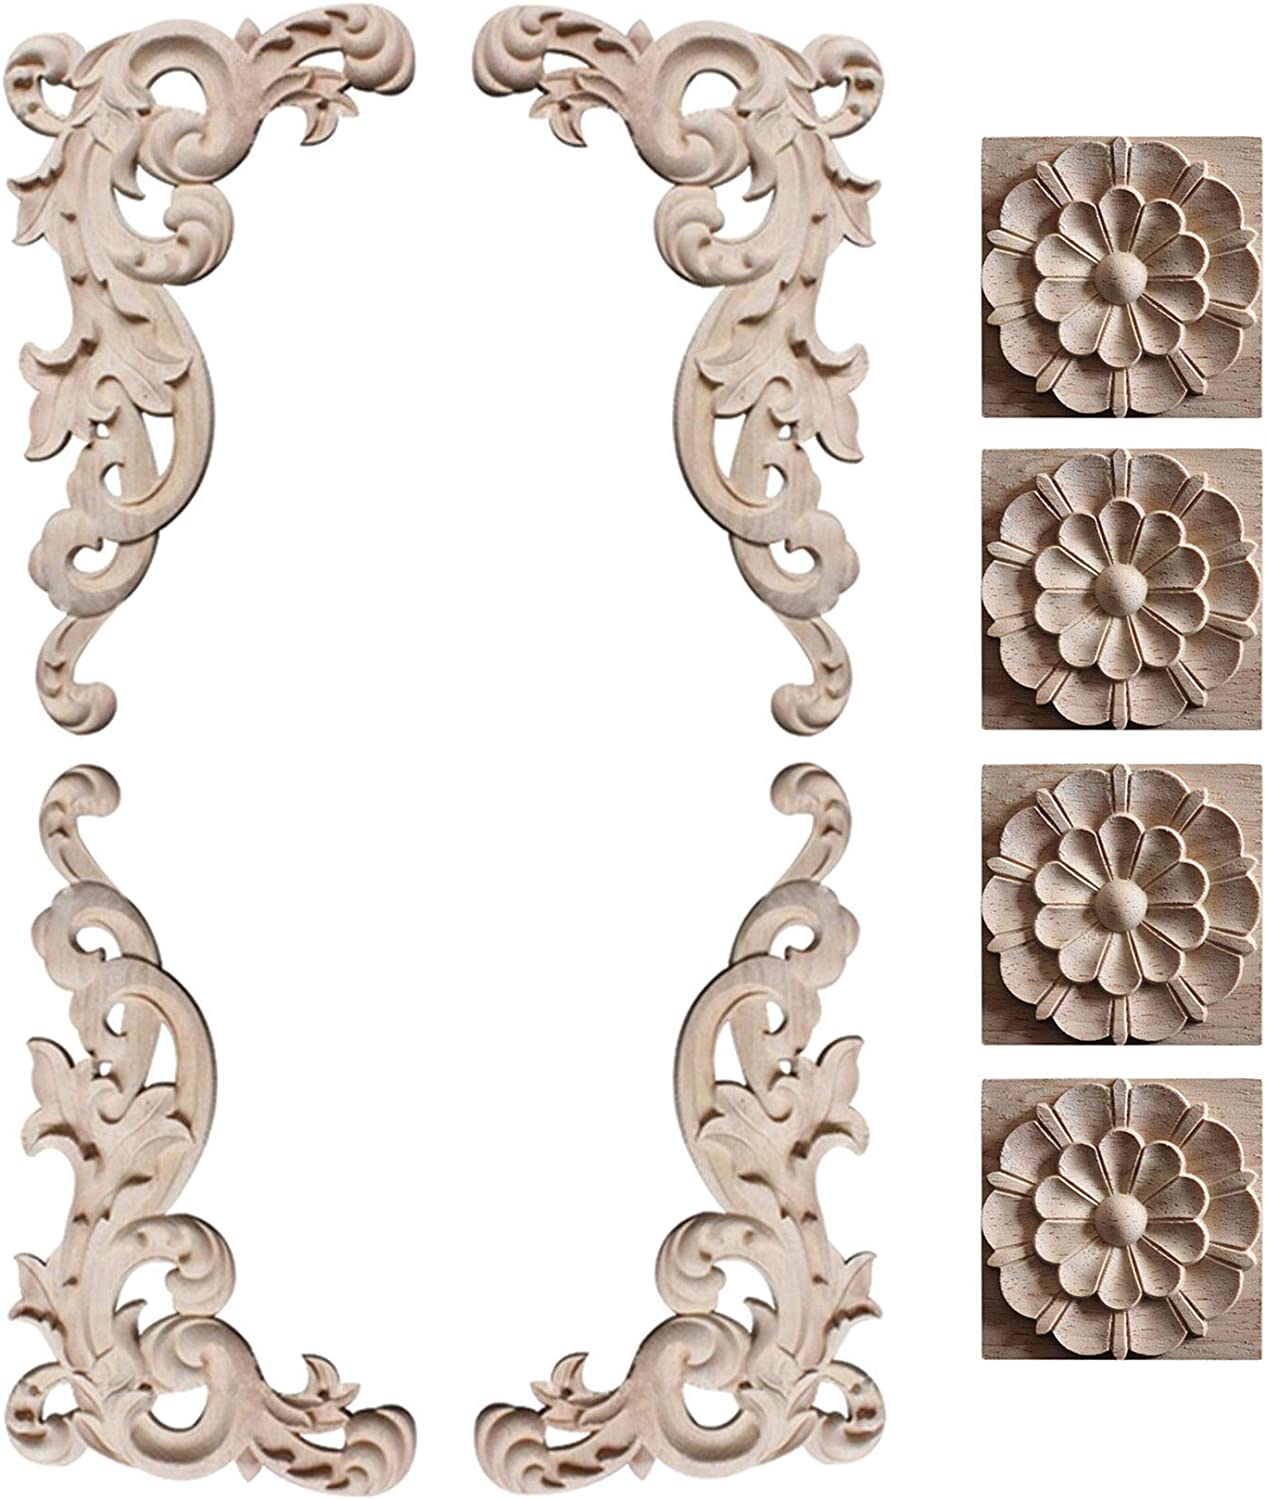 YUENA CARE 8PCS Wood Carved Corner Onlay Applique Furniture Decorations Unpainted Flower Decal